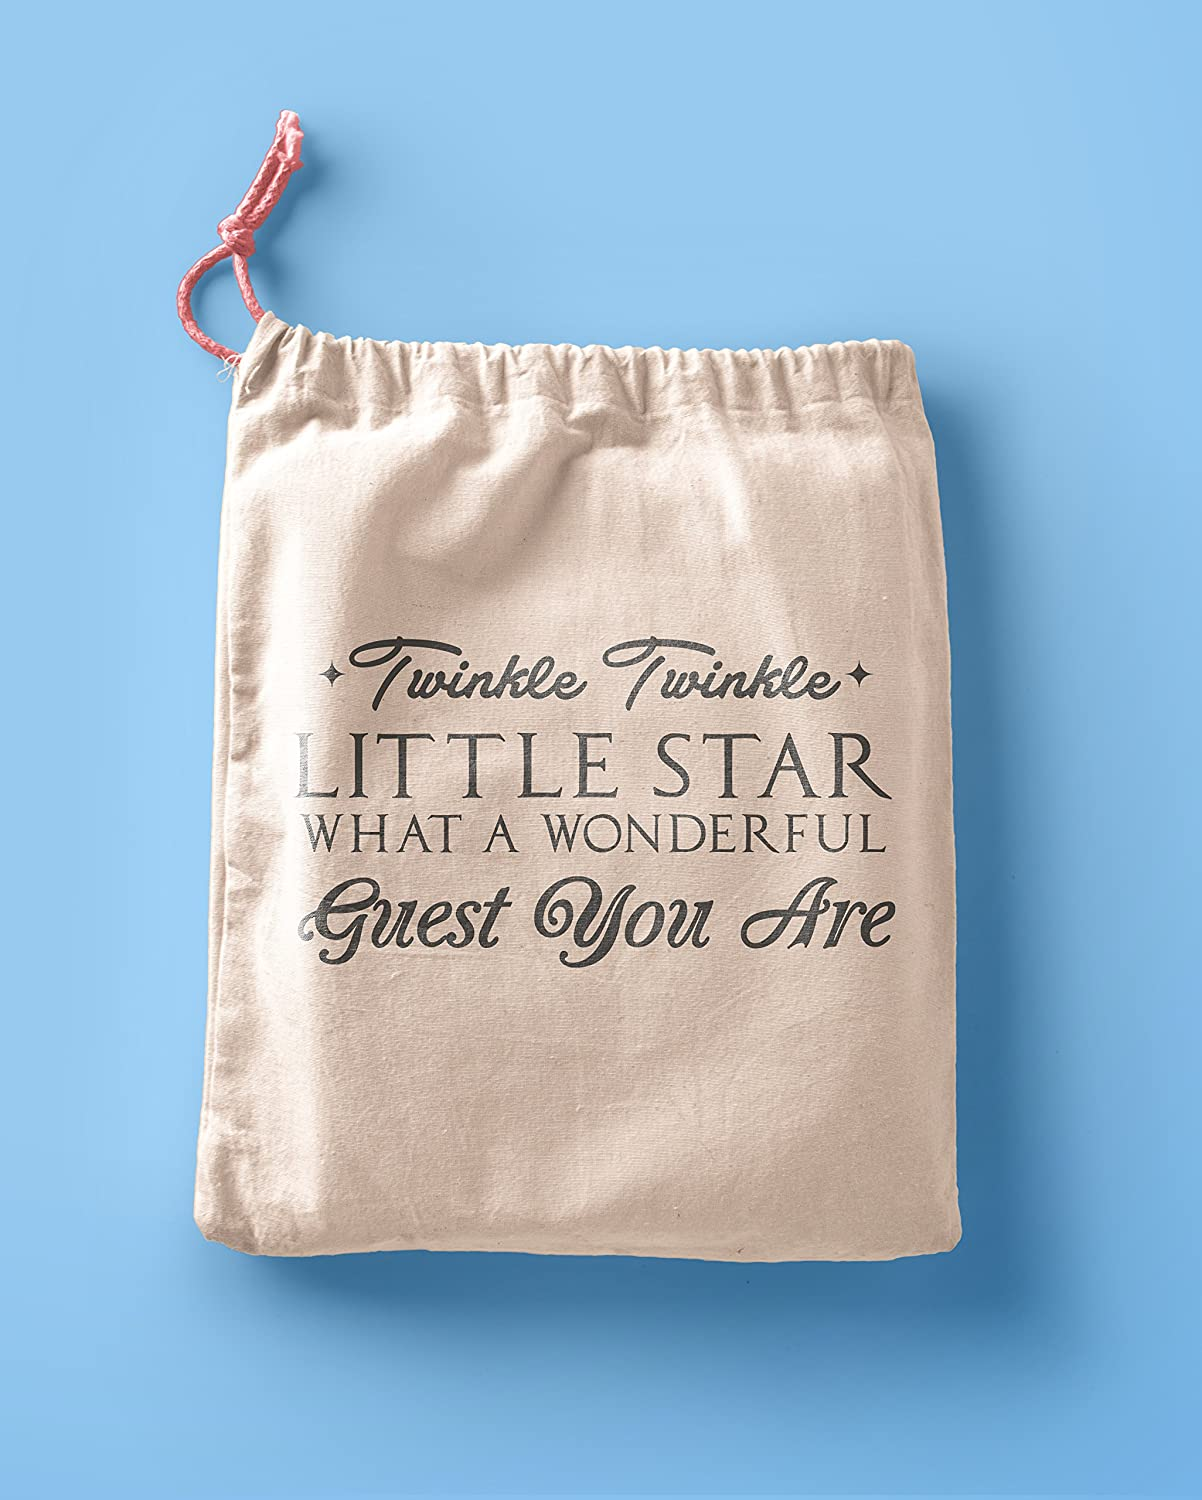 Twinkle Twinkle Little Star Favor Bags - Party Favor bags - Muslin Cotton Bags - Birthday party Bags - Poem Favor Bags